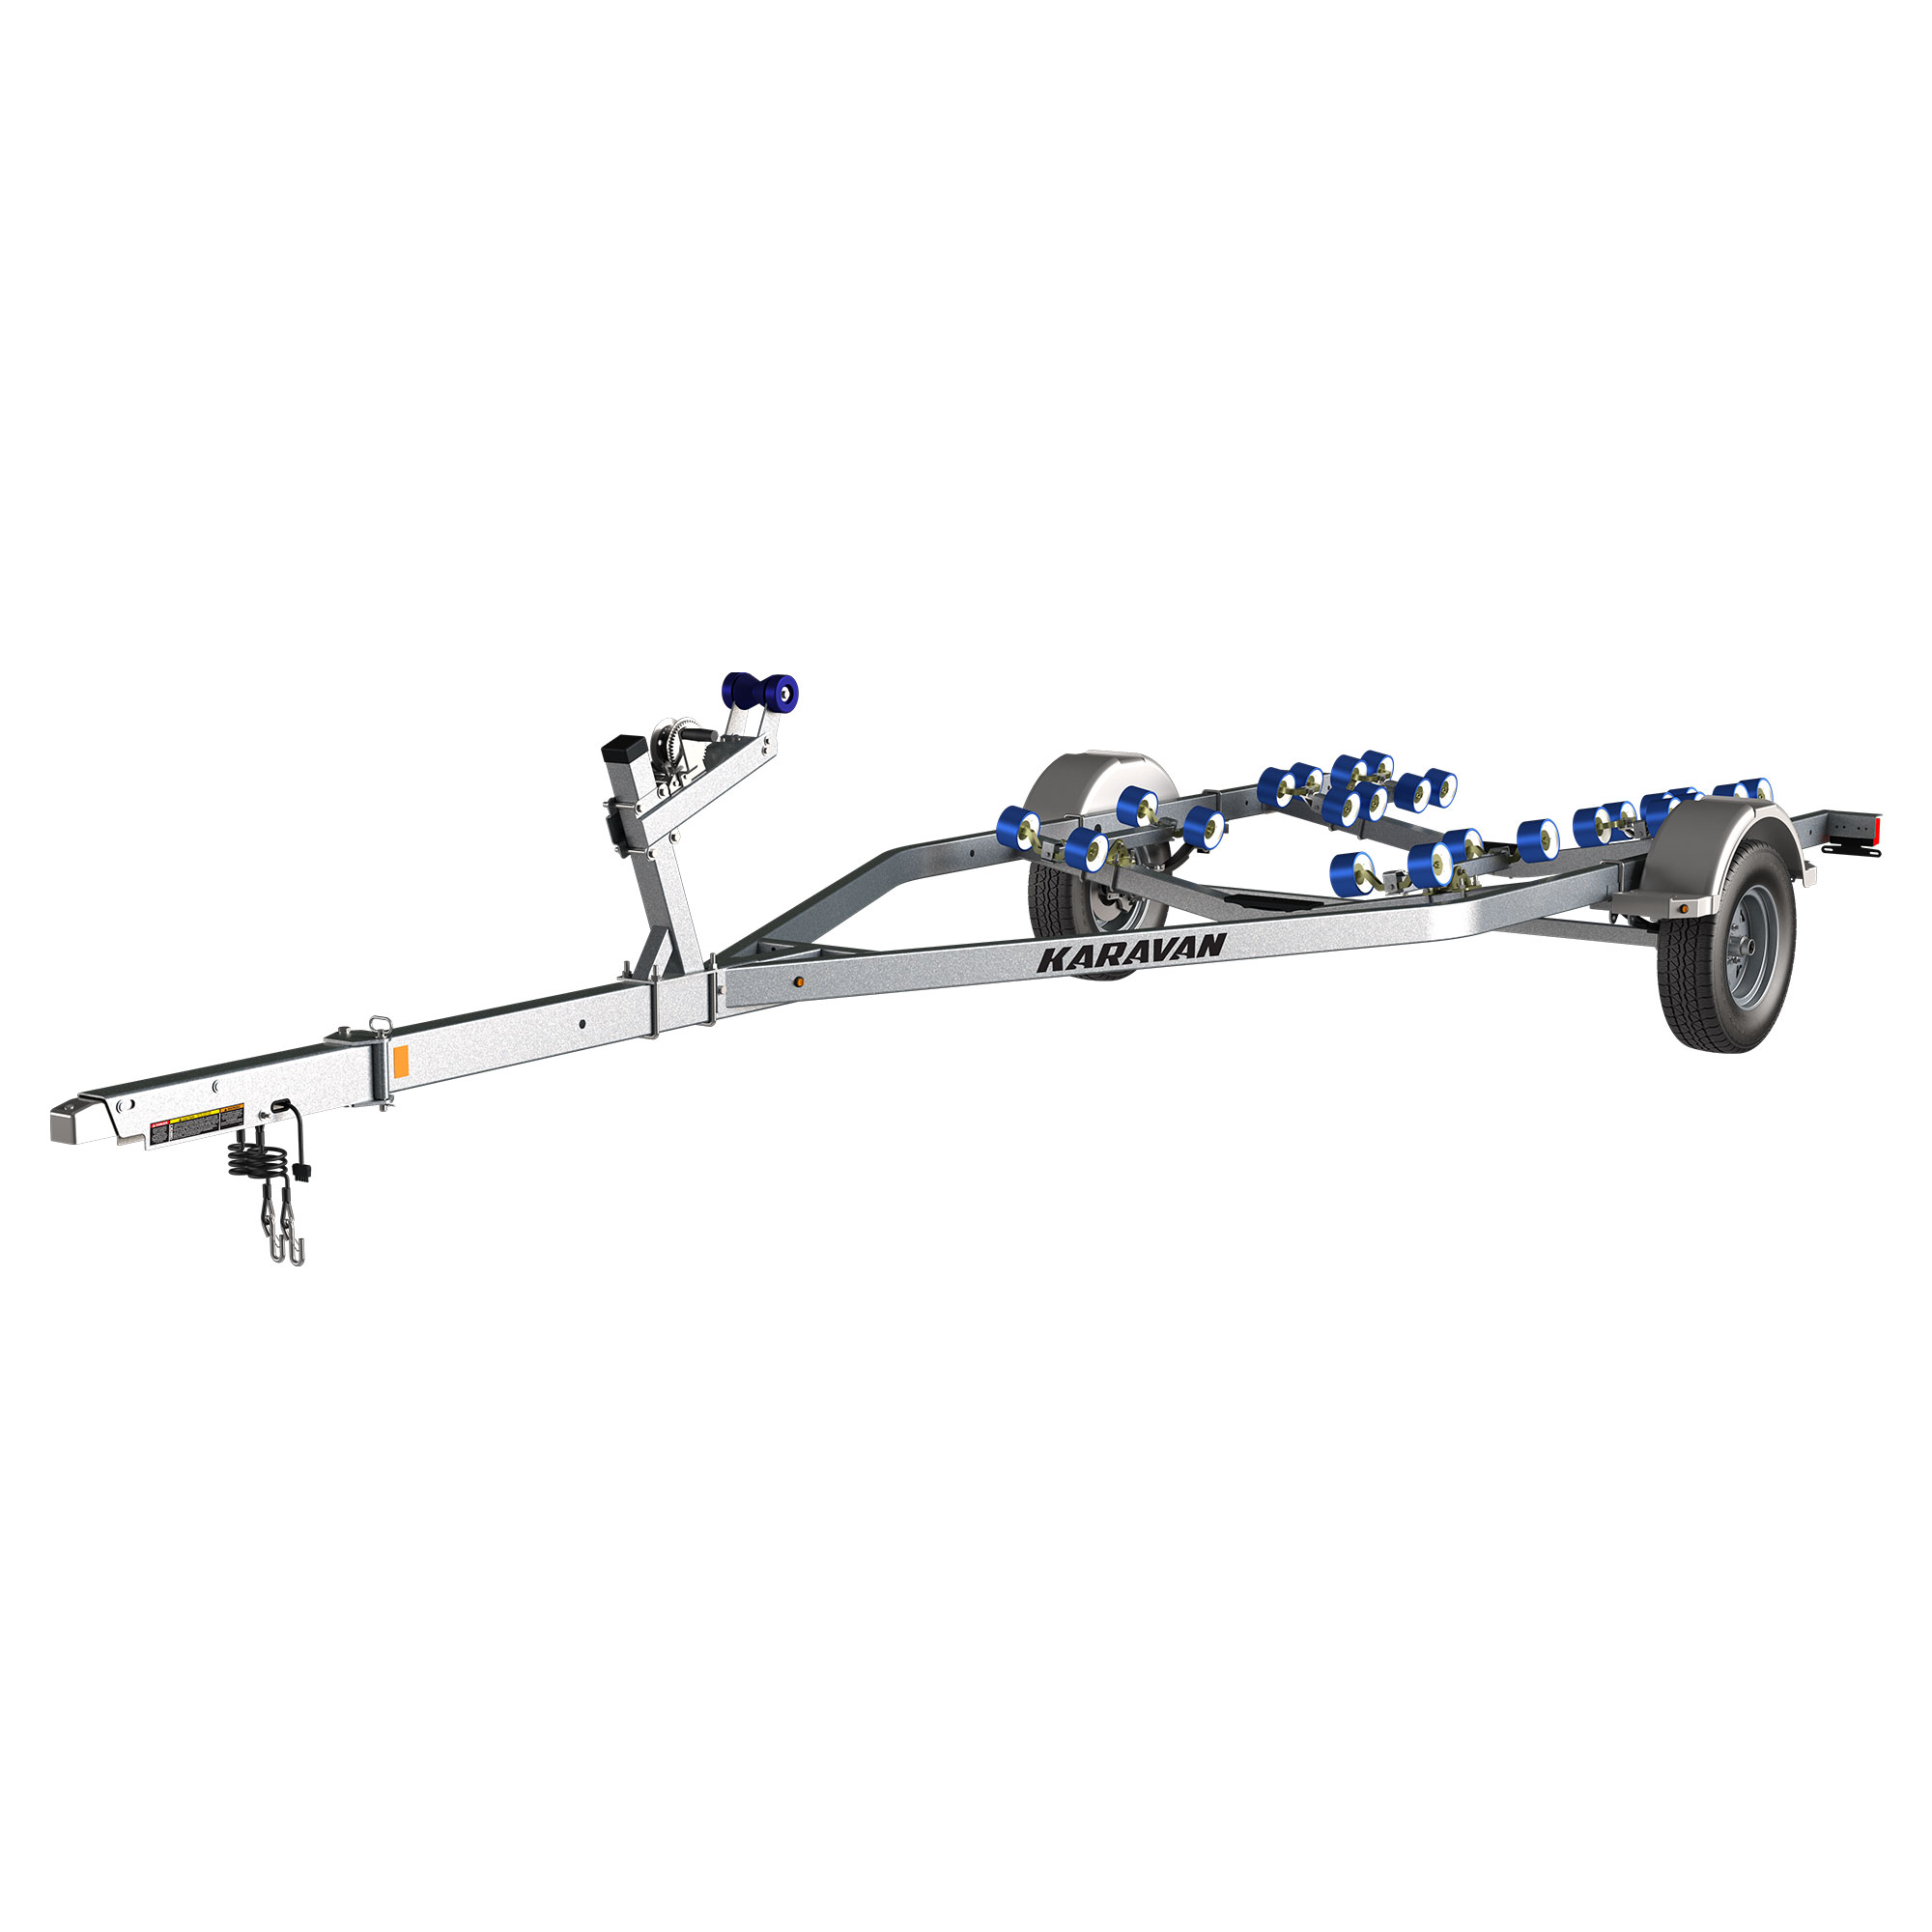 Karavan Trailer's Single Axel 3100# Roller Trailer, model number KKR-3100-78-S-GL